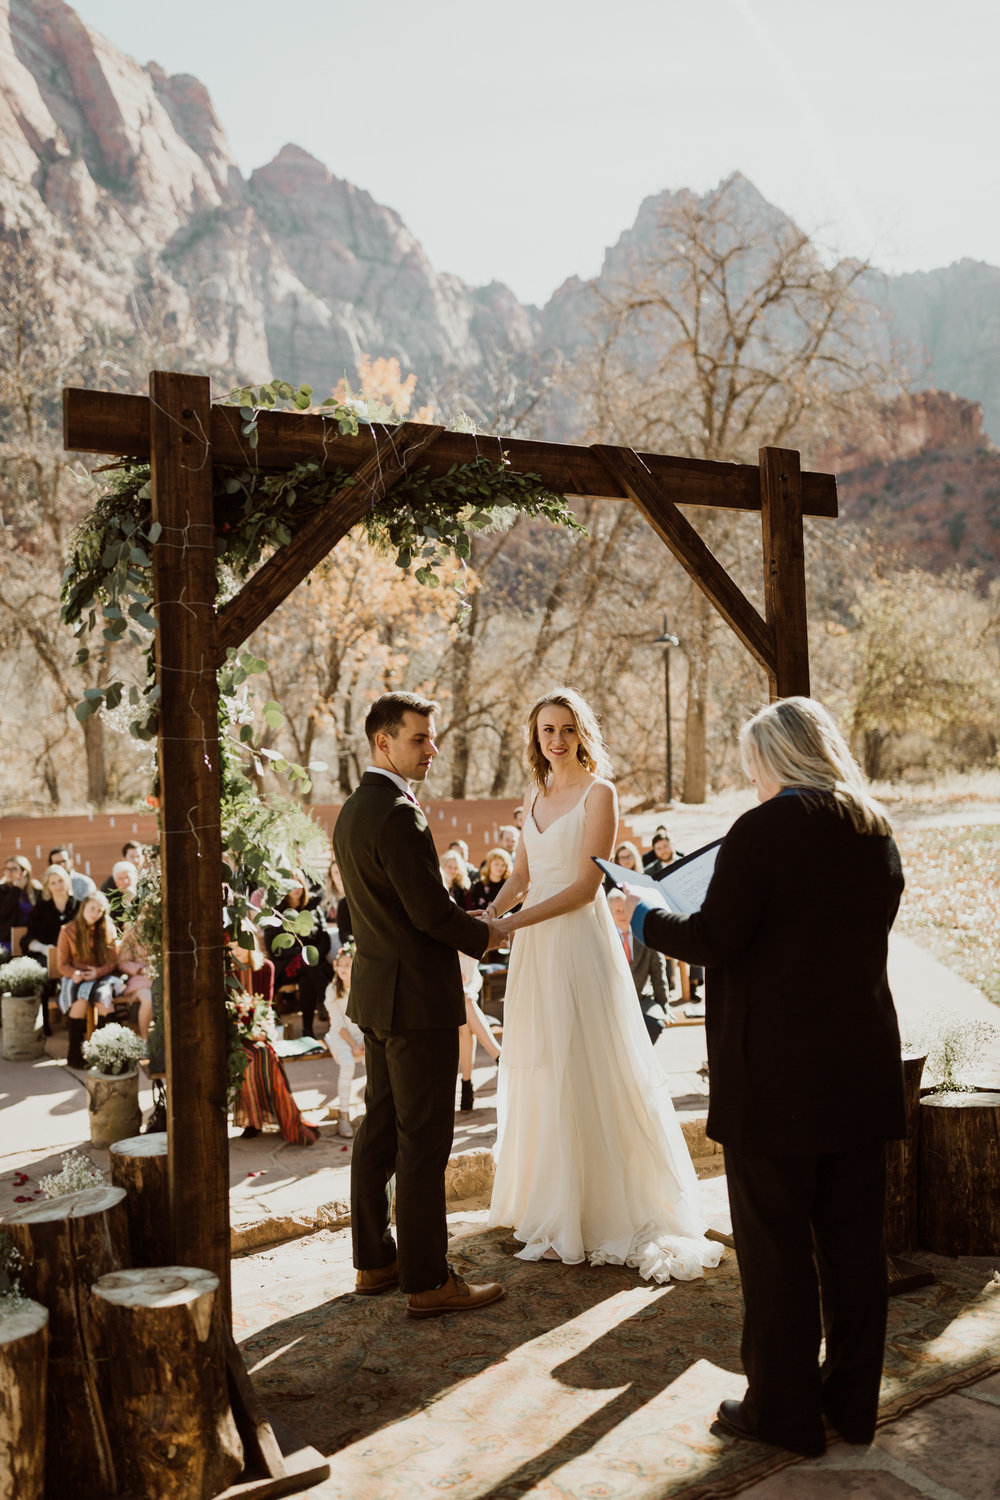 zion-national-park-wedding-79.jpg